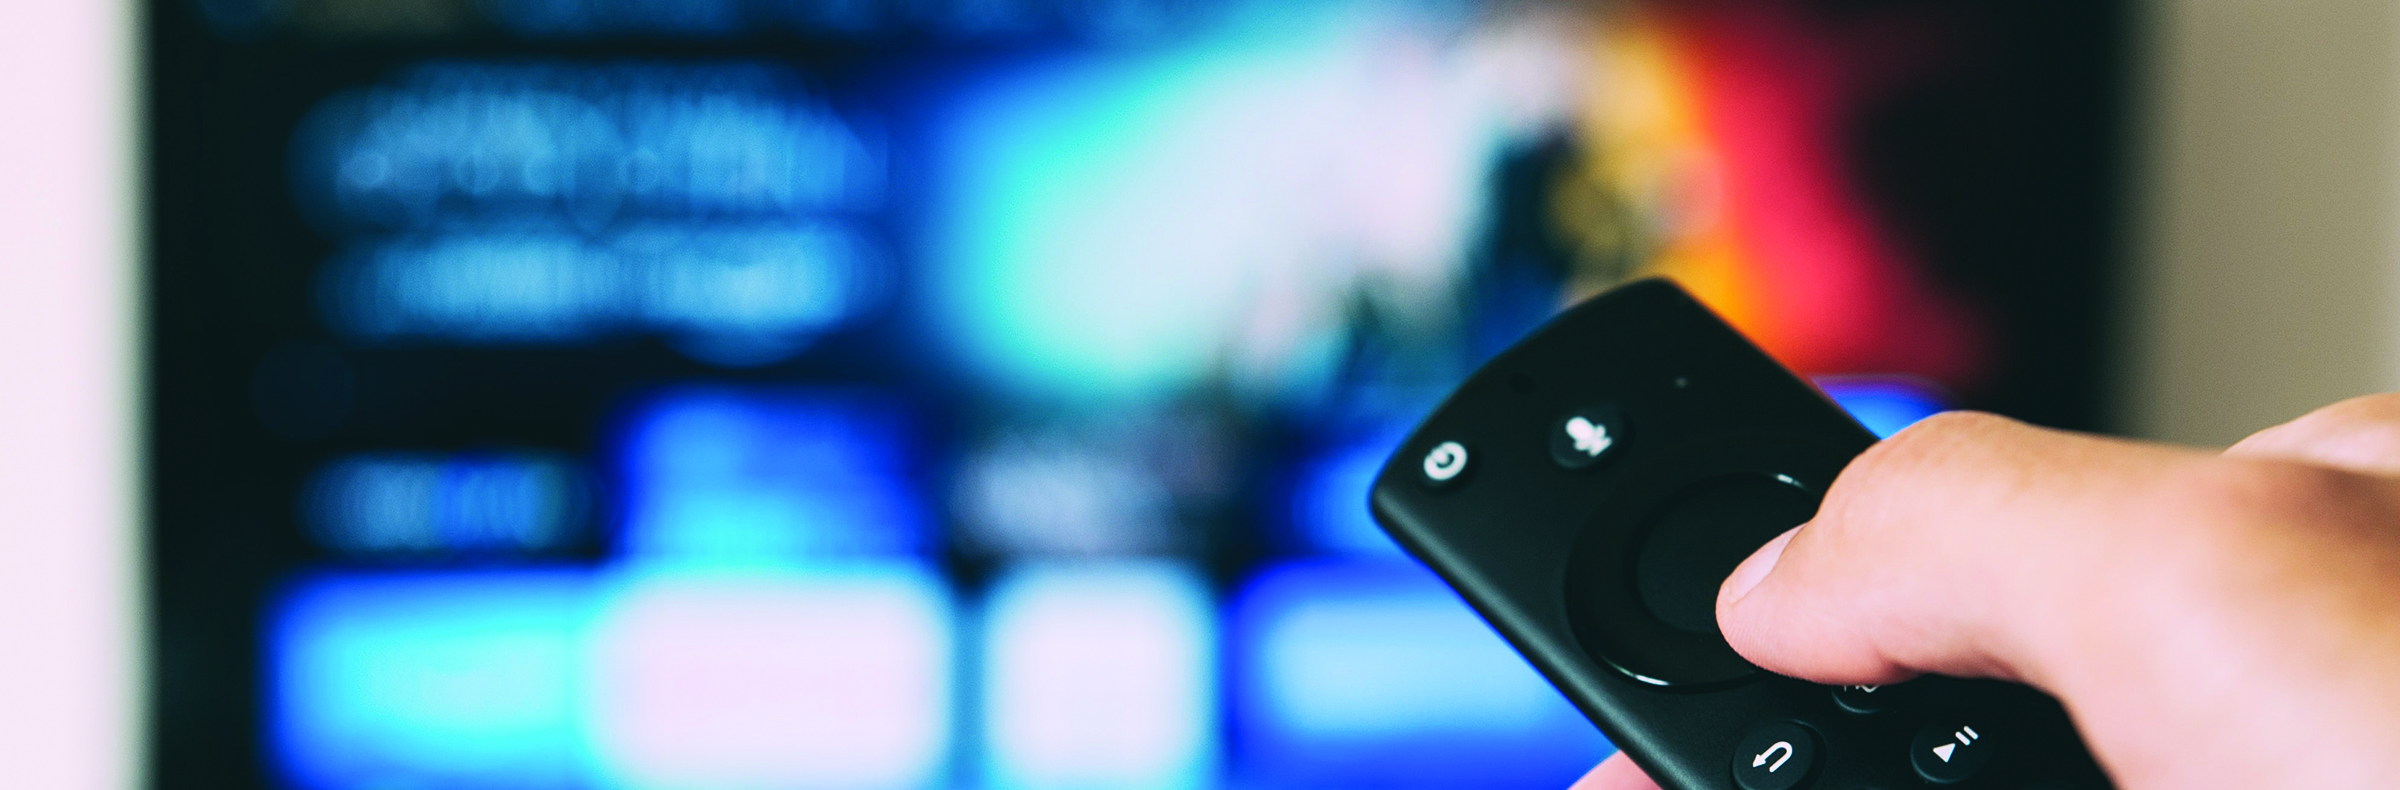 TV Advertising Goes 'Over the Top'